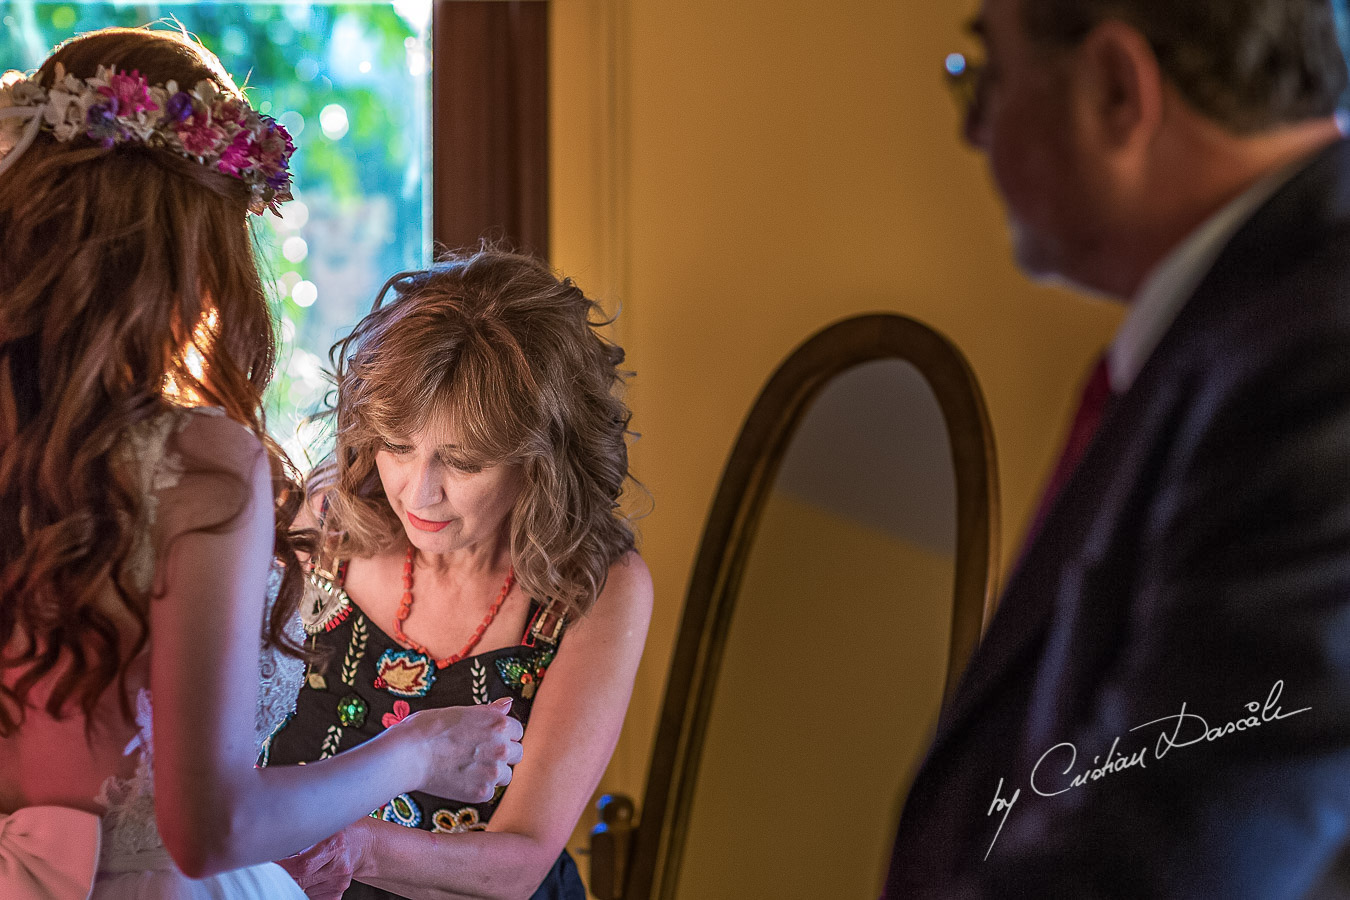 The mother of the bride takes care of the final preparations for the bride before her bohemian wedding at Villa in Trimiklini.